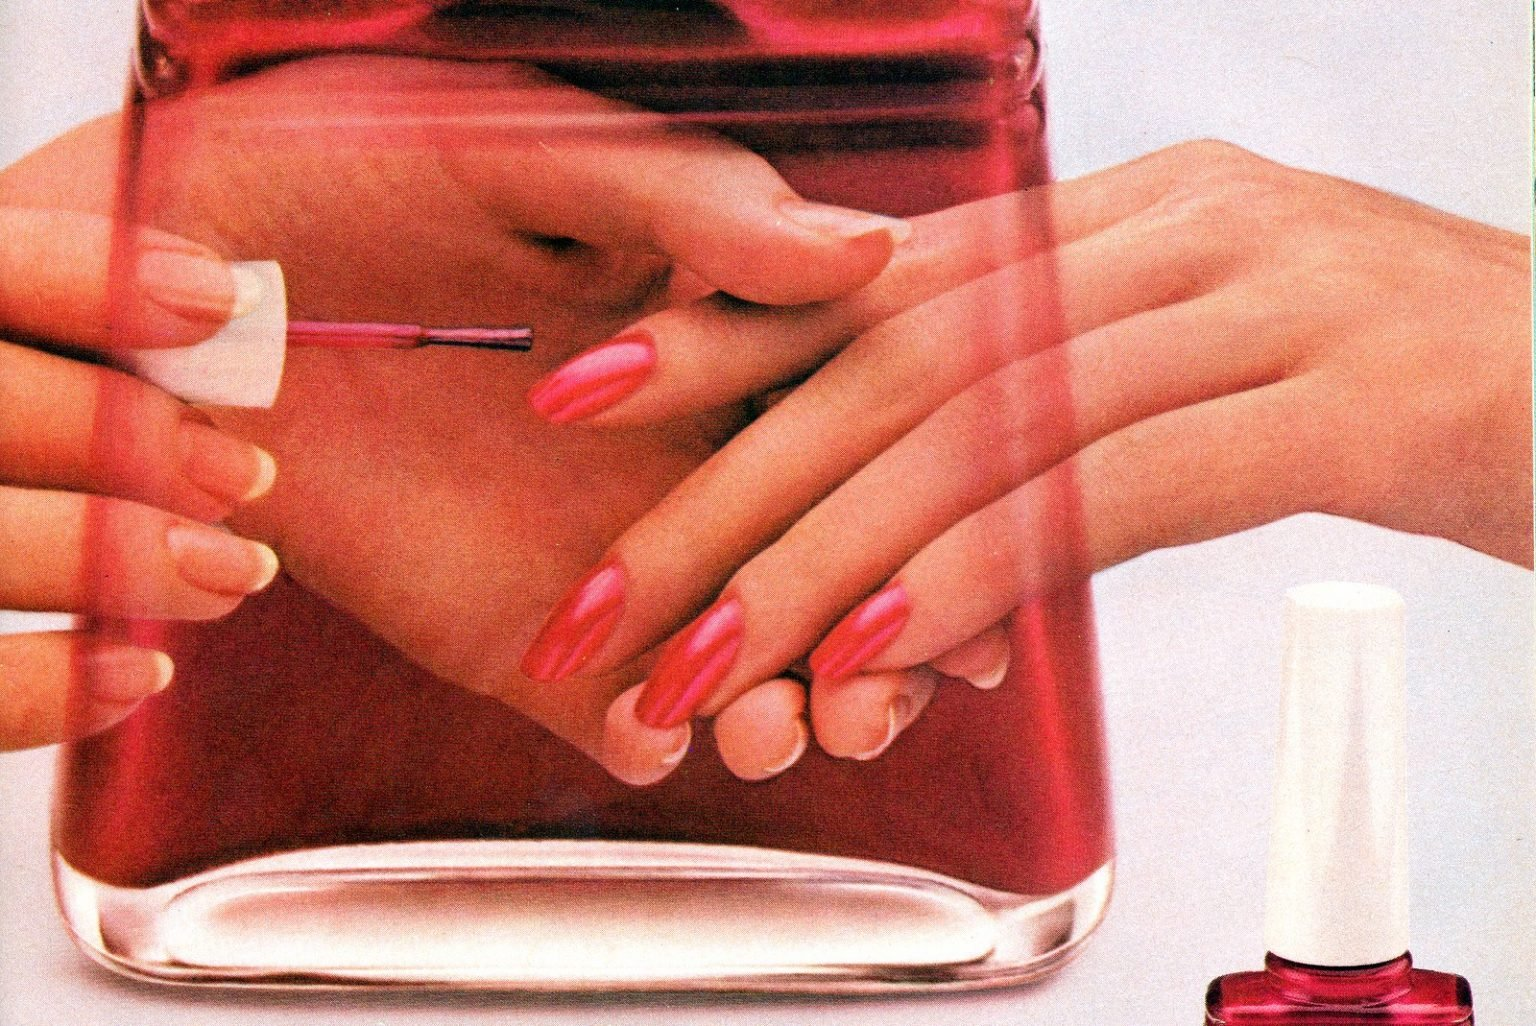 Nail polish ads from the '80s Popular colors - top brands (1980-1989)